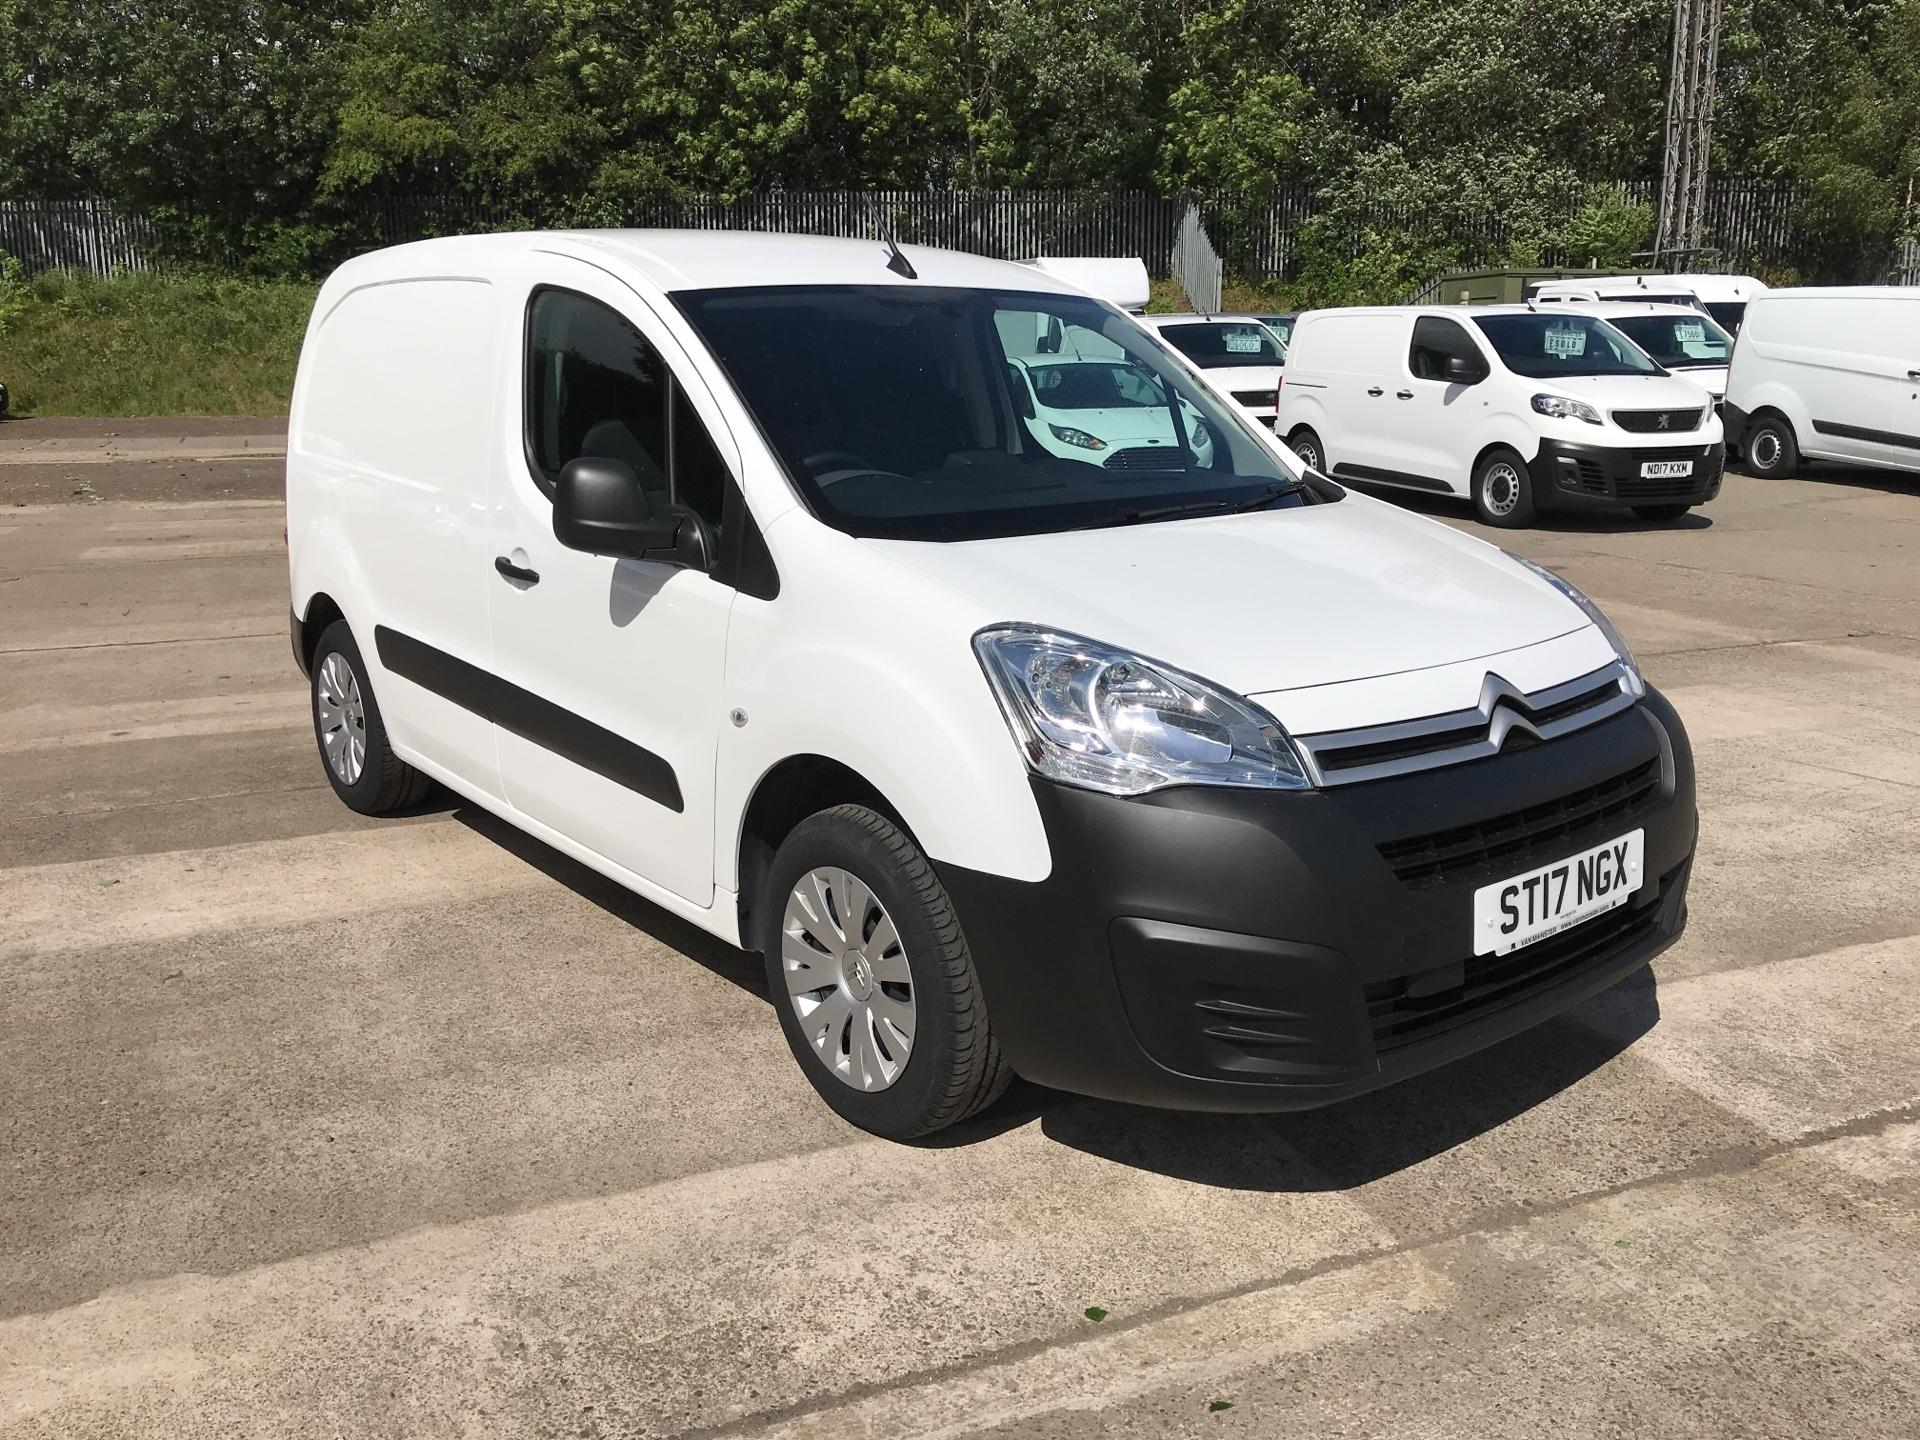 2017 Citroen Berlingo L1 DIESEL 1.6 HDI 625KG ENTERPRISE 75PS EURO 4/5 (ST17NGX)